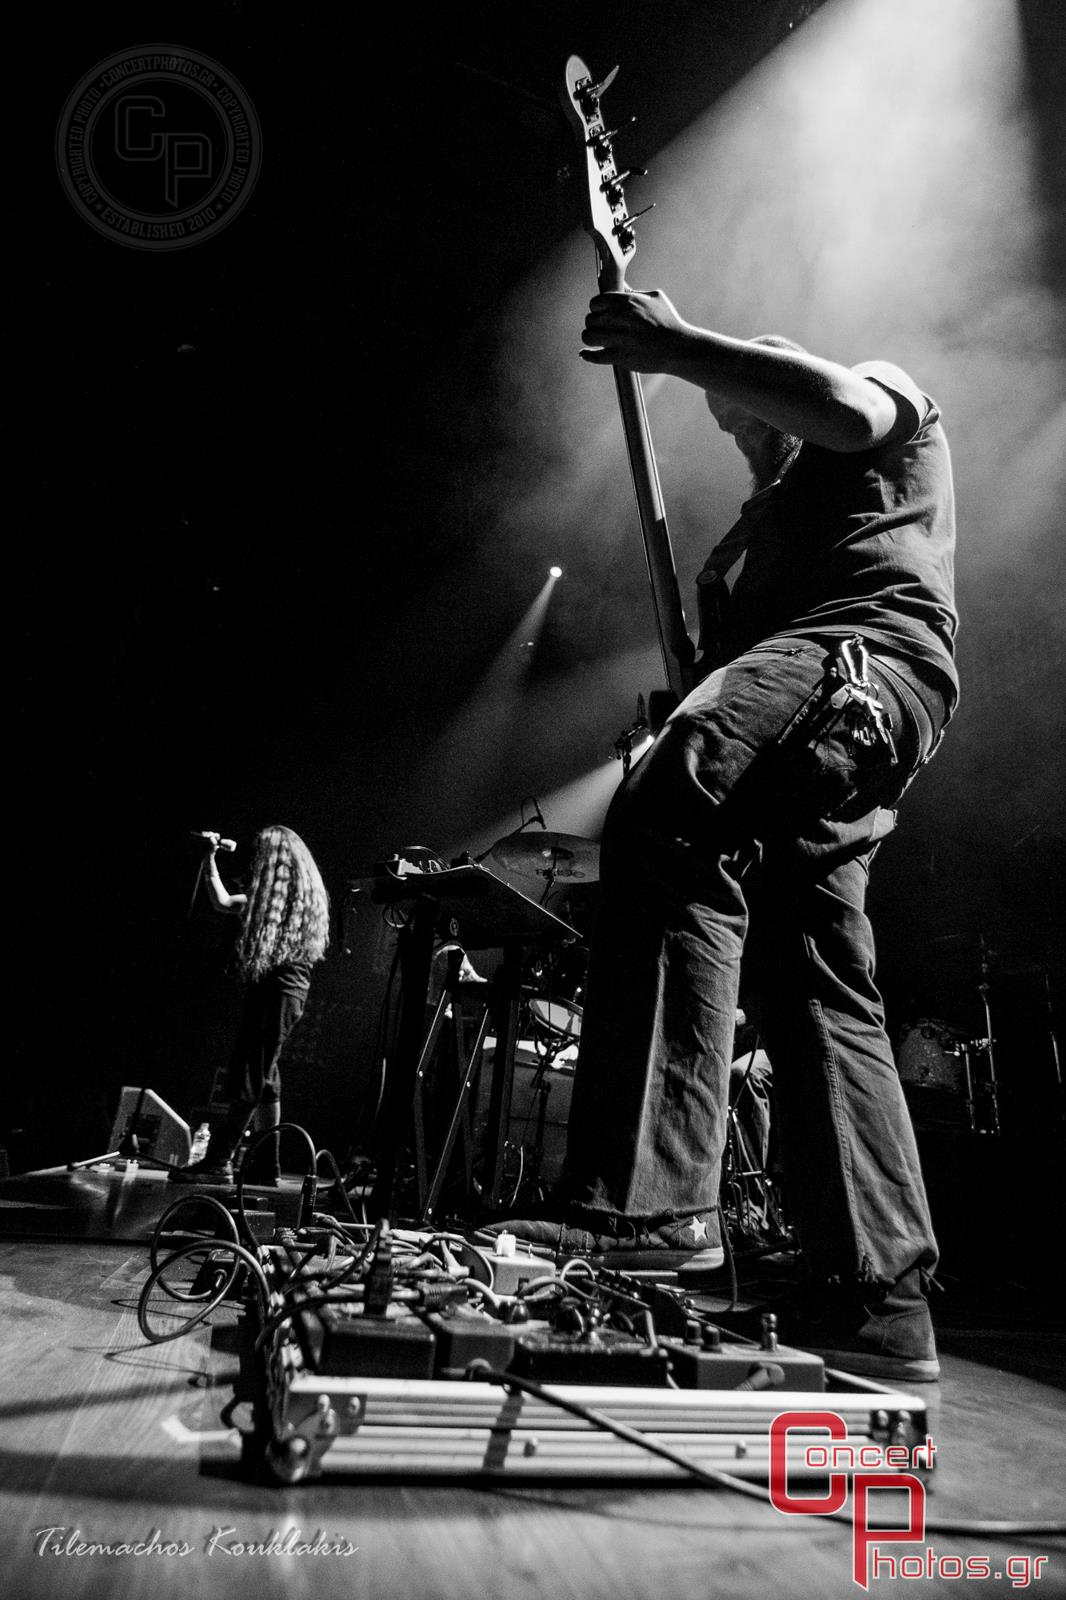 Neurosis-Neurosis photographer:  - concertphotos_20140707_23_56_49-7